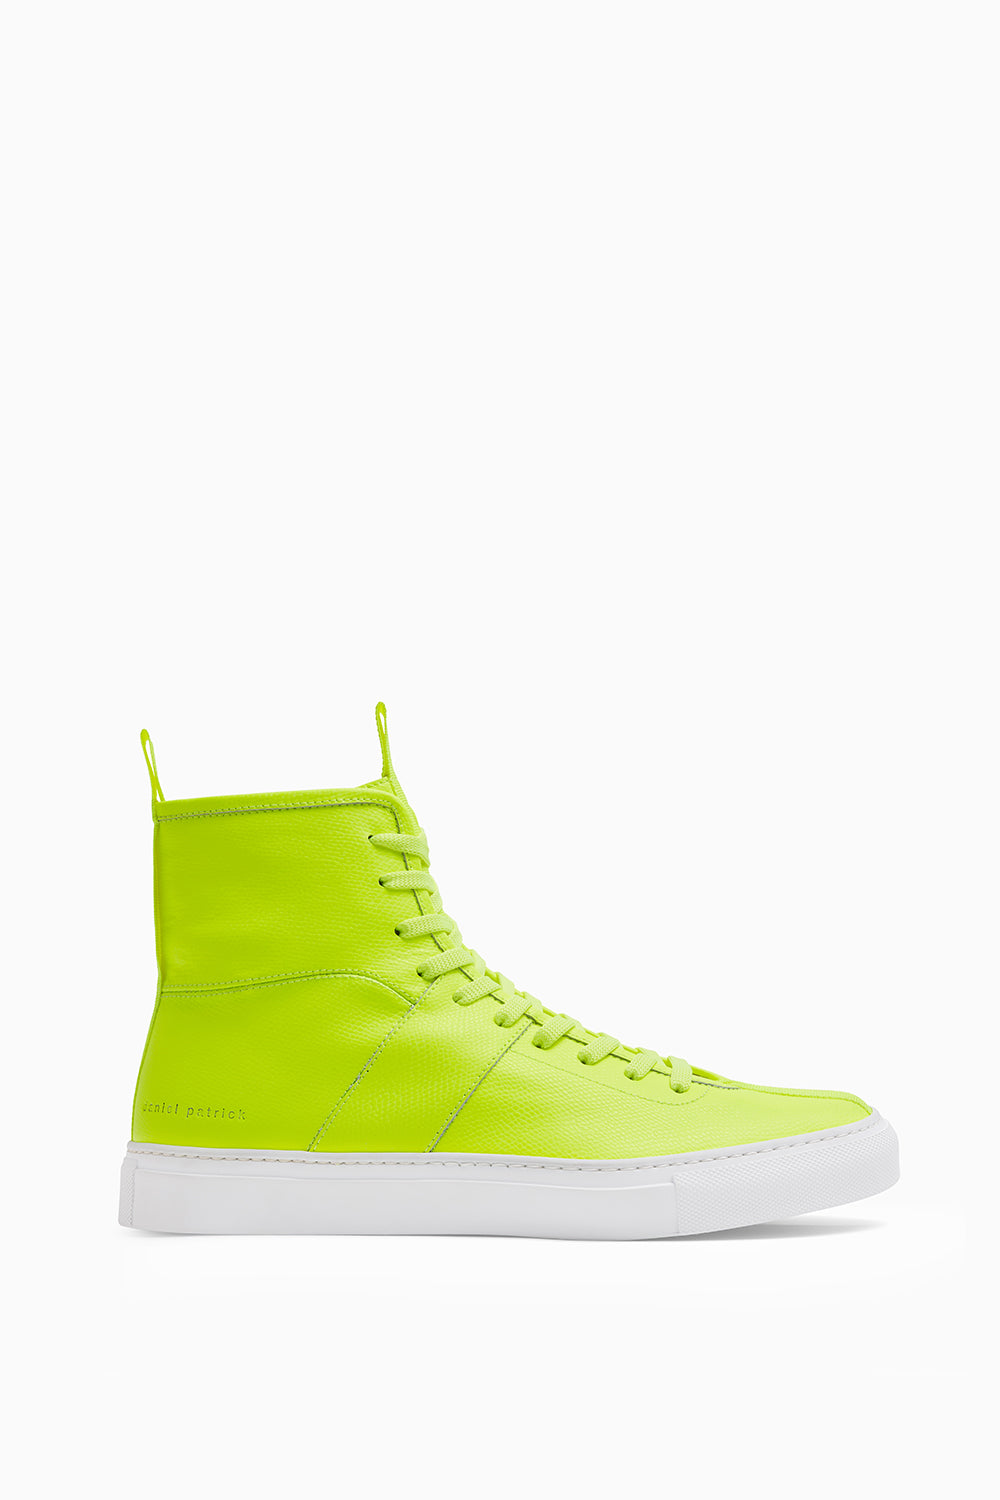 high top roamer in neon yellow by Daniel patrick